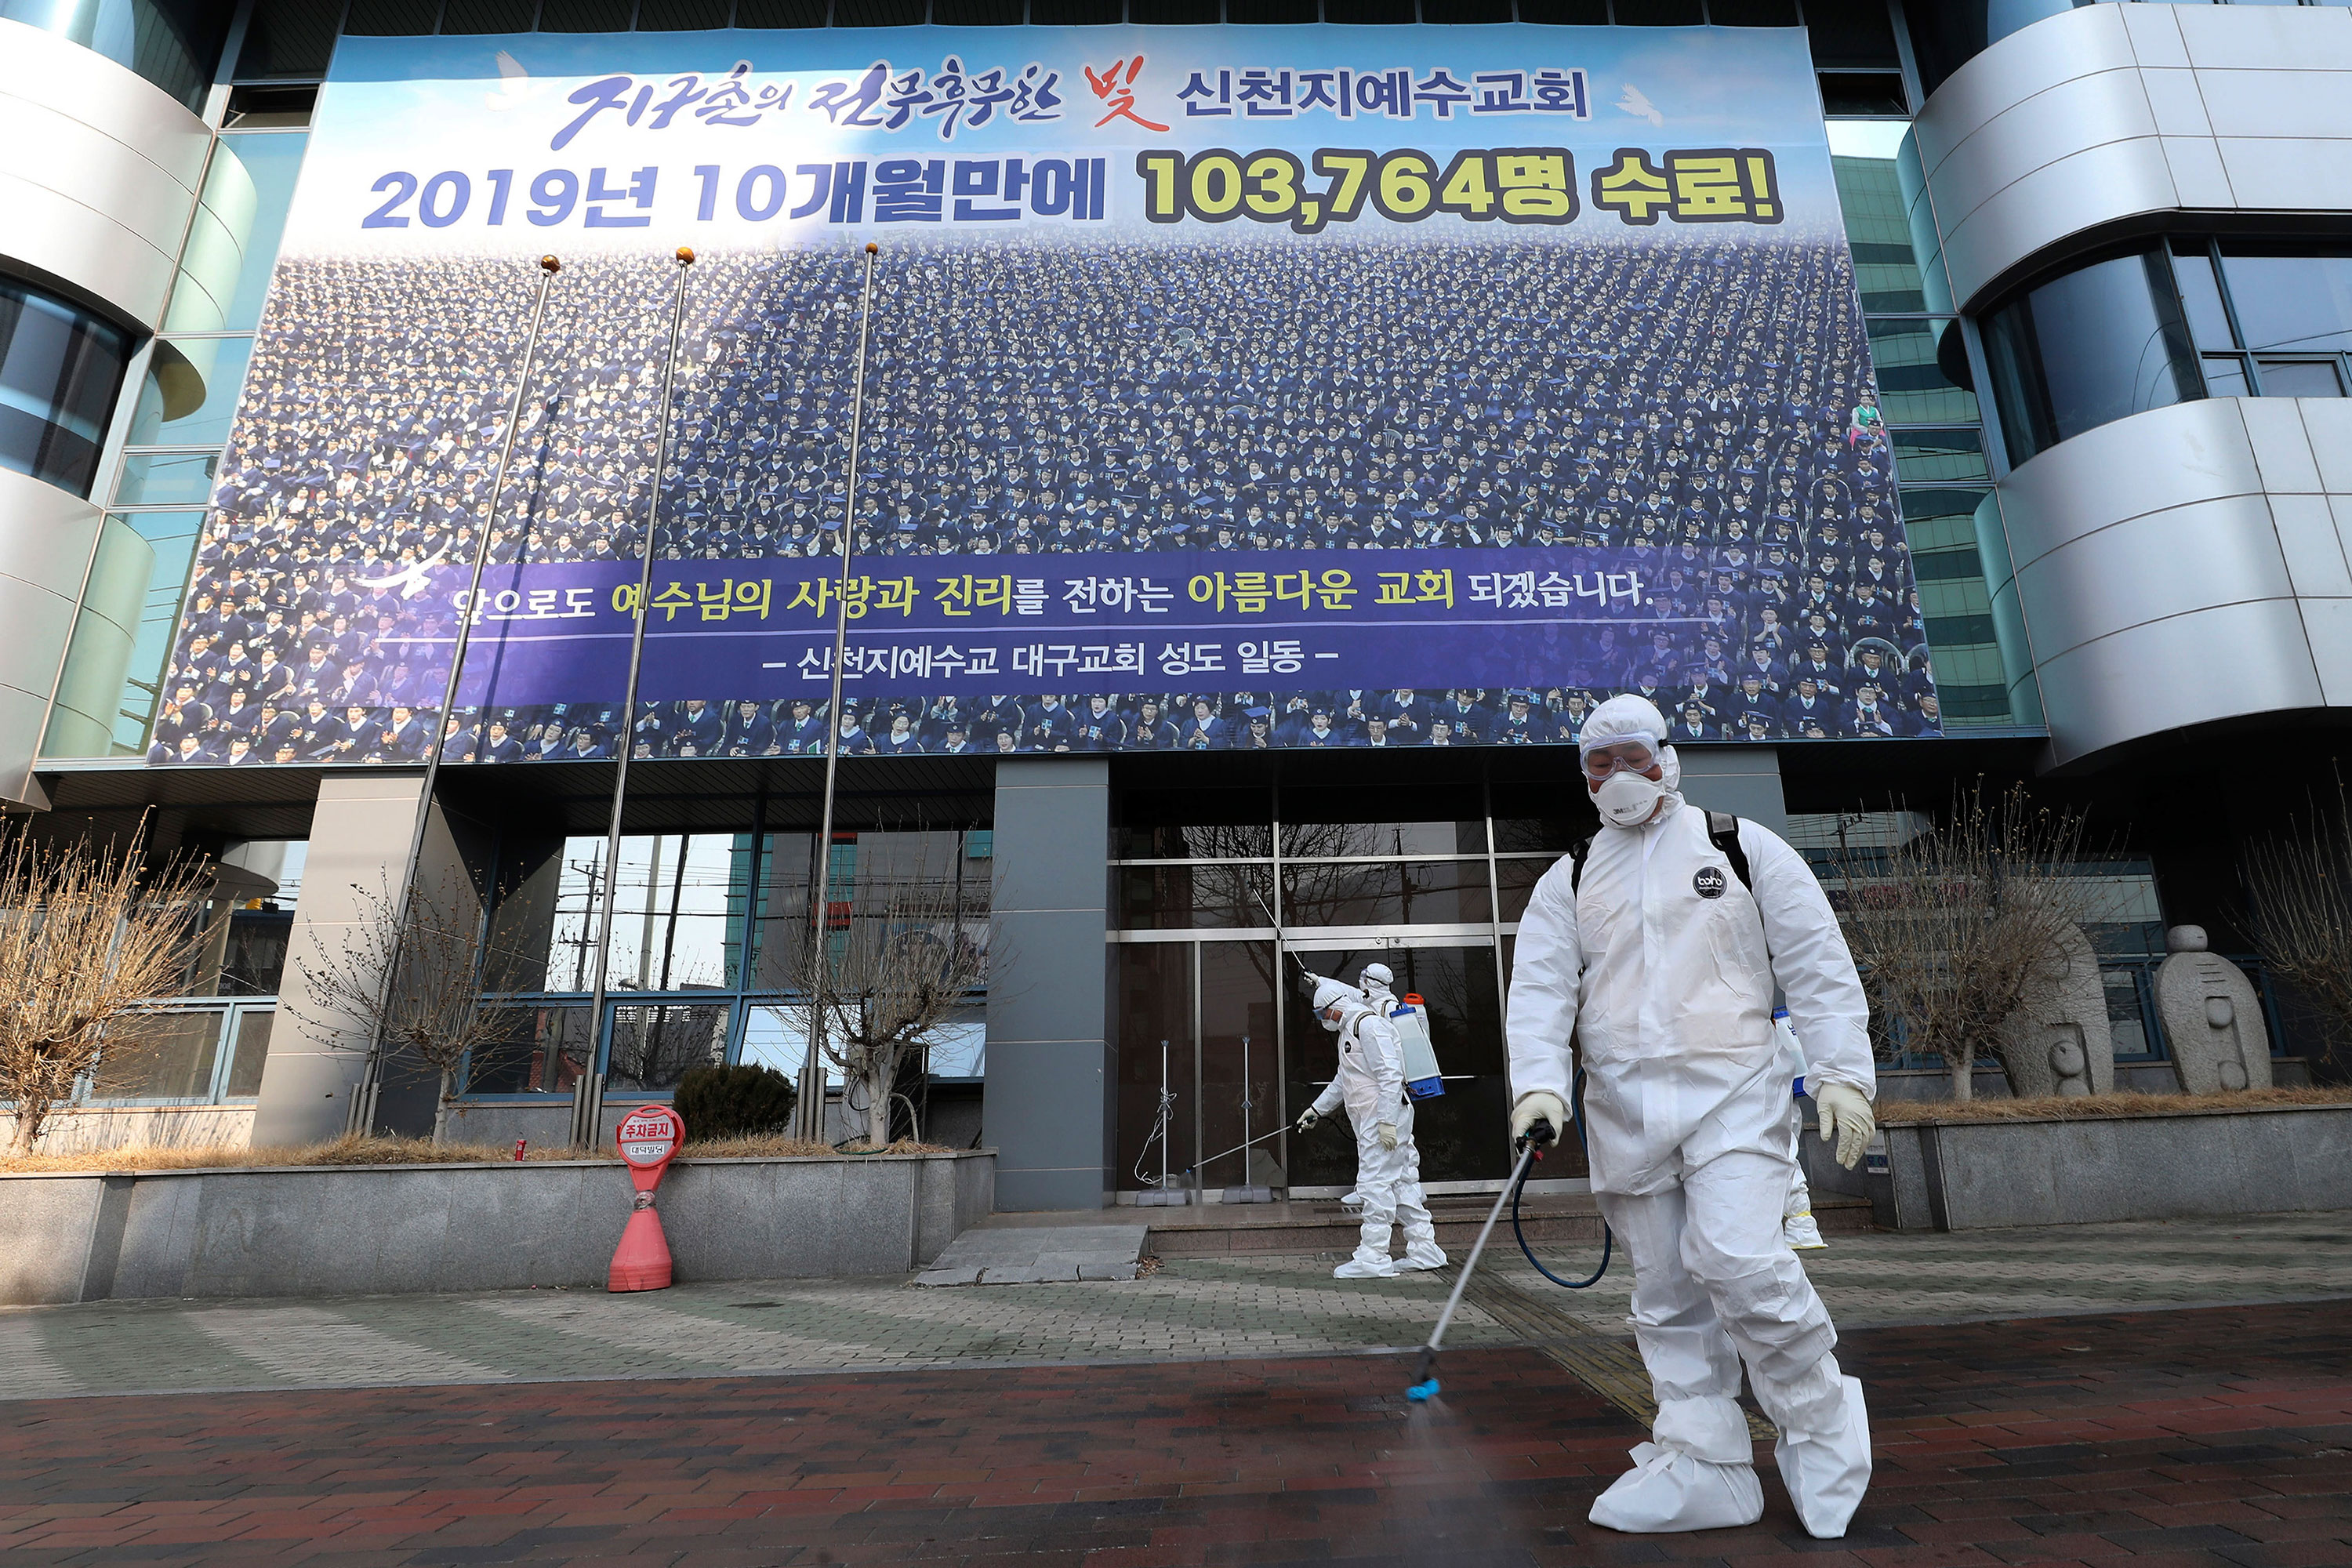 Workers spray disinfectant in front of the Shincheonji building in Daegu, South Korea, on February 21.